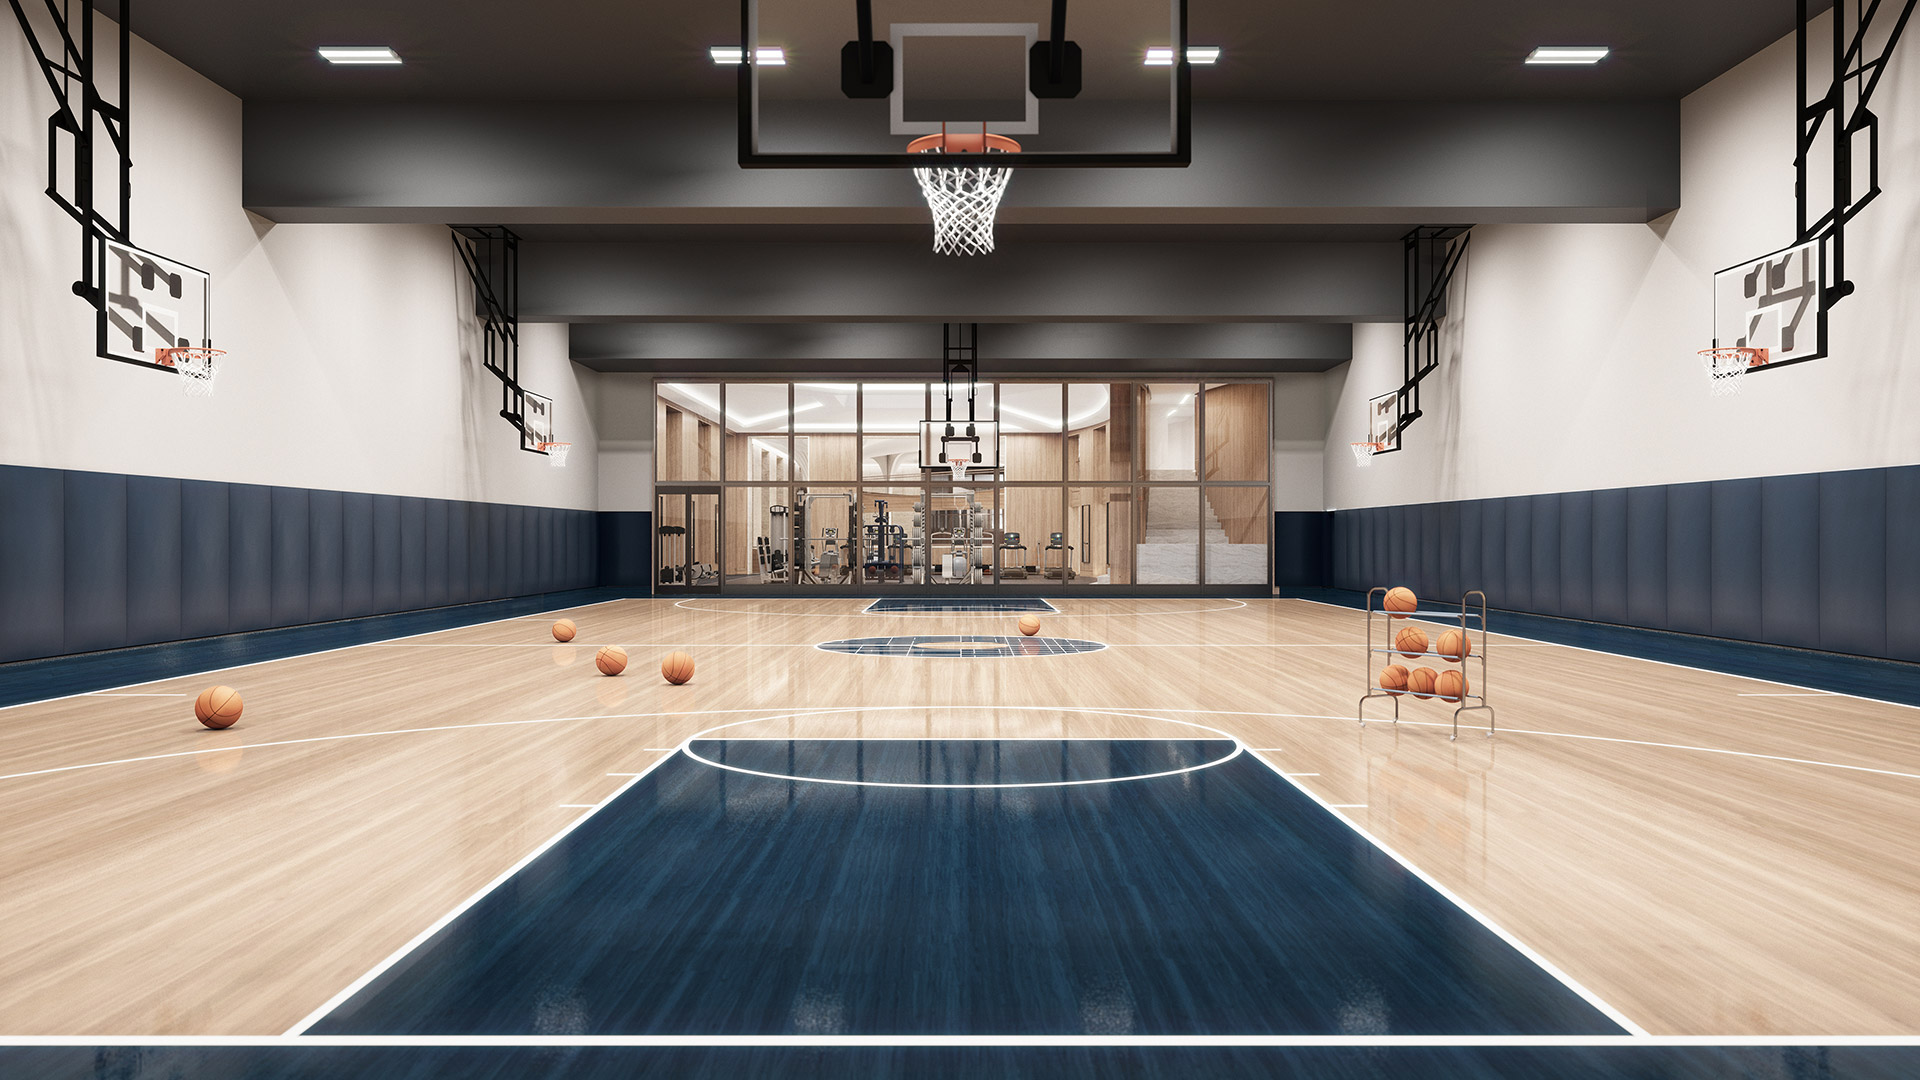 Swanky Residential Basketball Courts Just In Time For March Madness